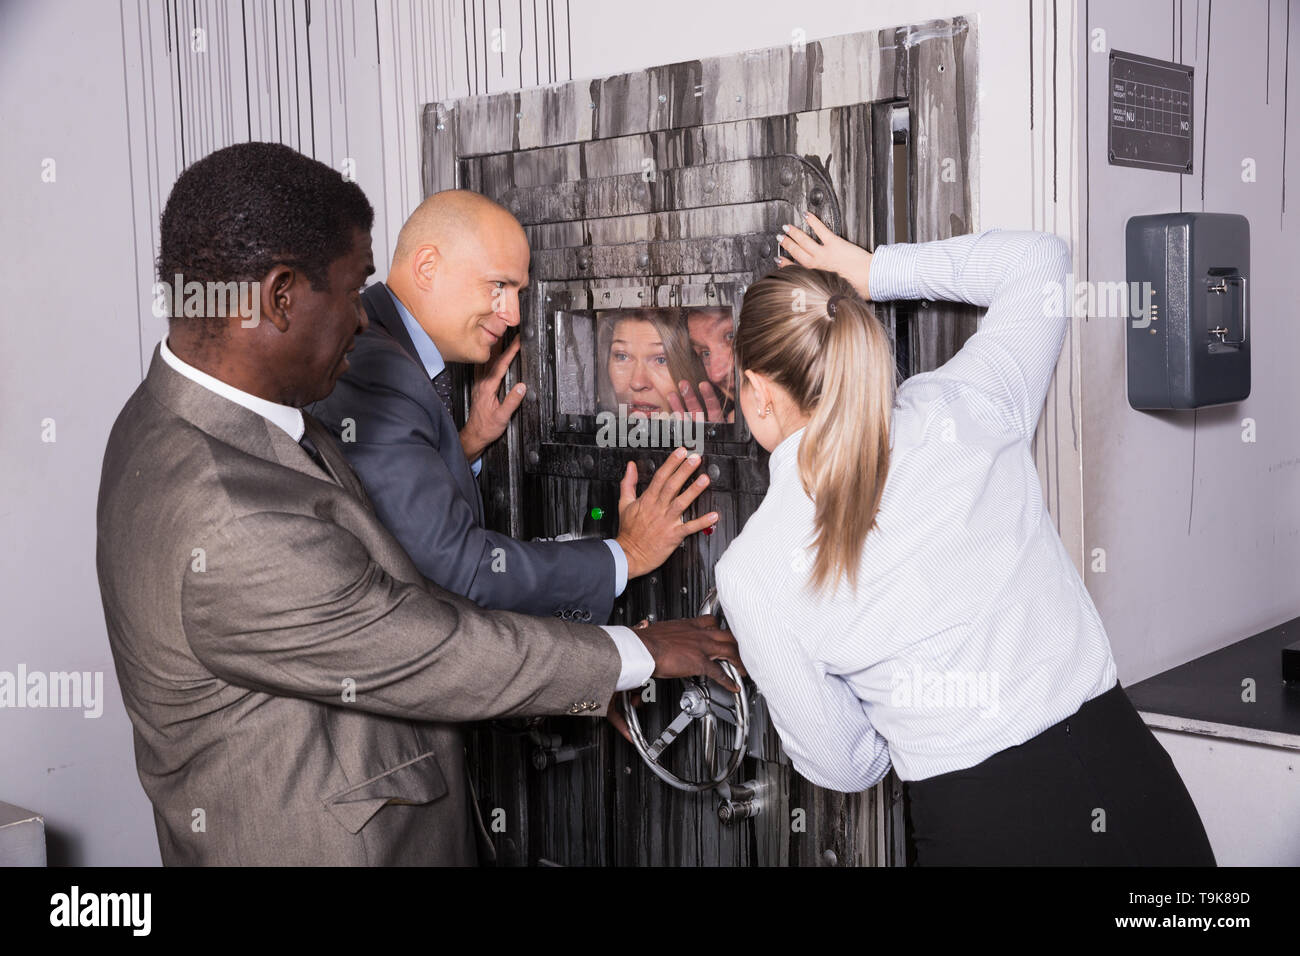 Scared businesspeople trying not to let others into quest room, shutting door. Concept of fear of competition - Stock Image